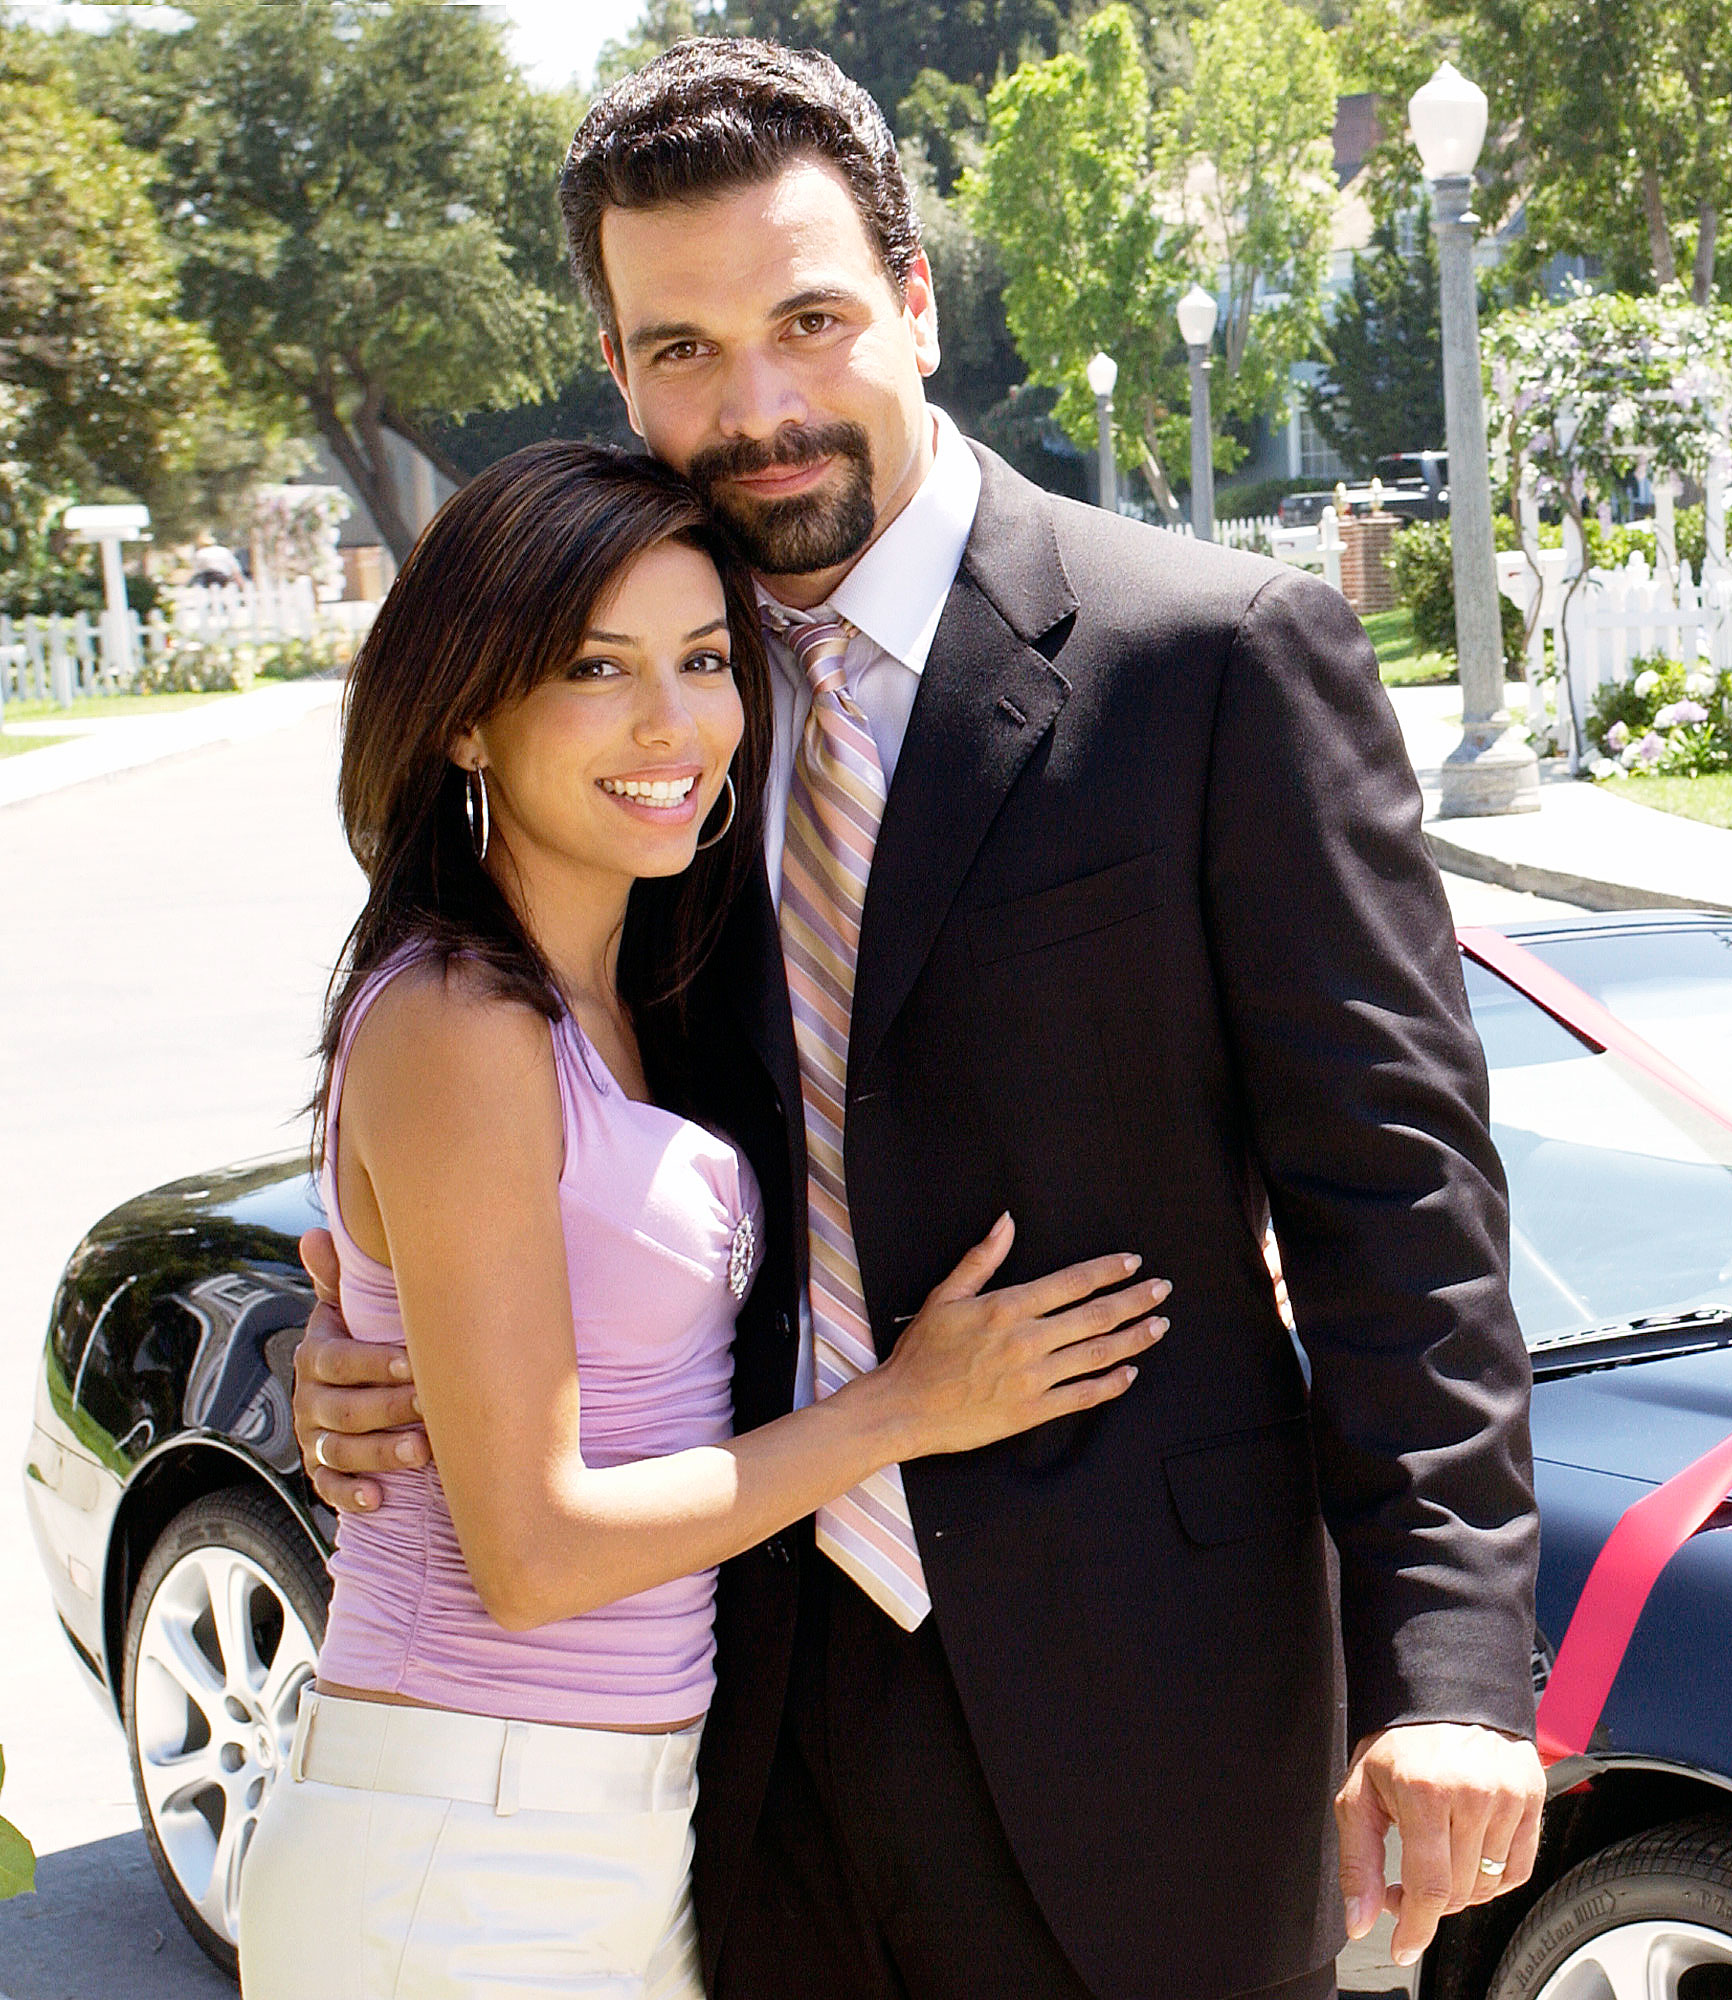 Best TV Couples Desperate Housewives Ricardo Antonio Chavira Eva Longoria - Show: Desperate Housewives Actors: Ricardo Antonio Chavira and Eva Longoria Network: ABC Seasons: 8